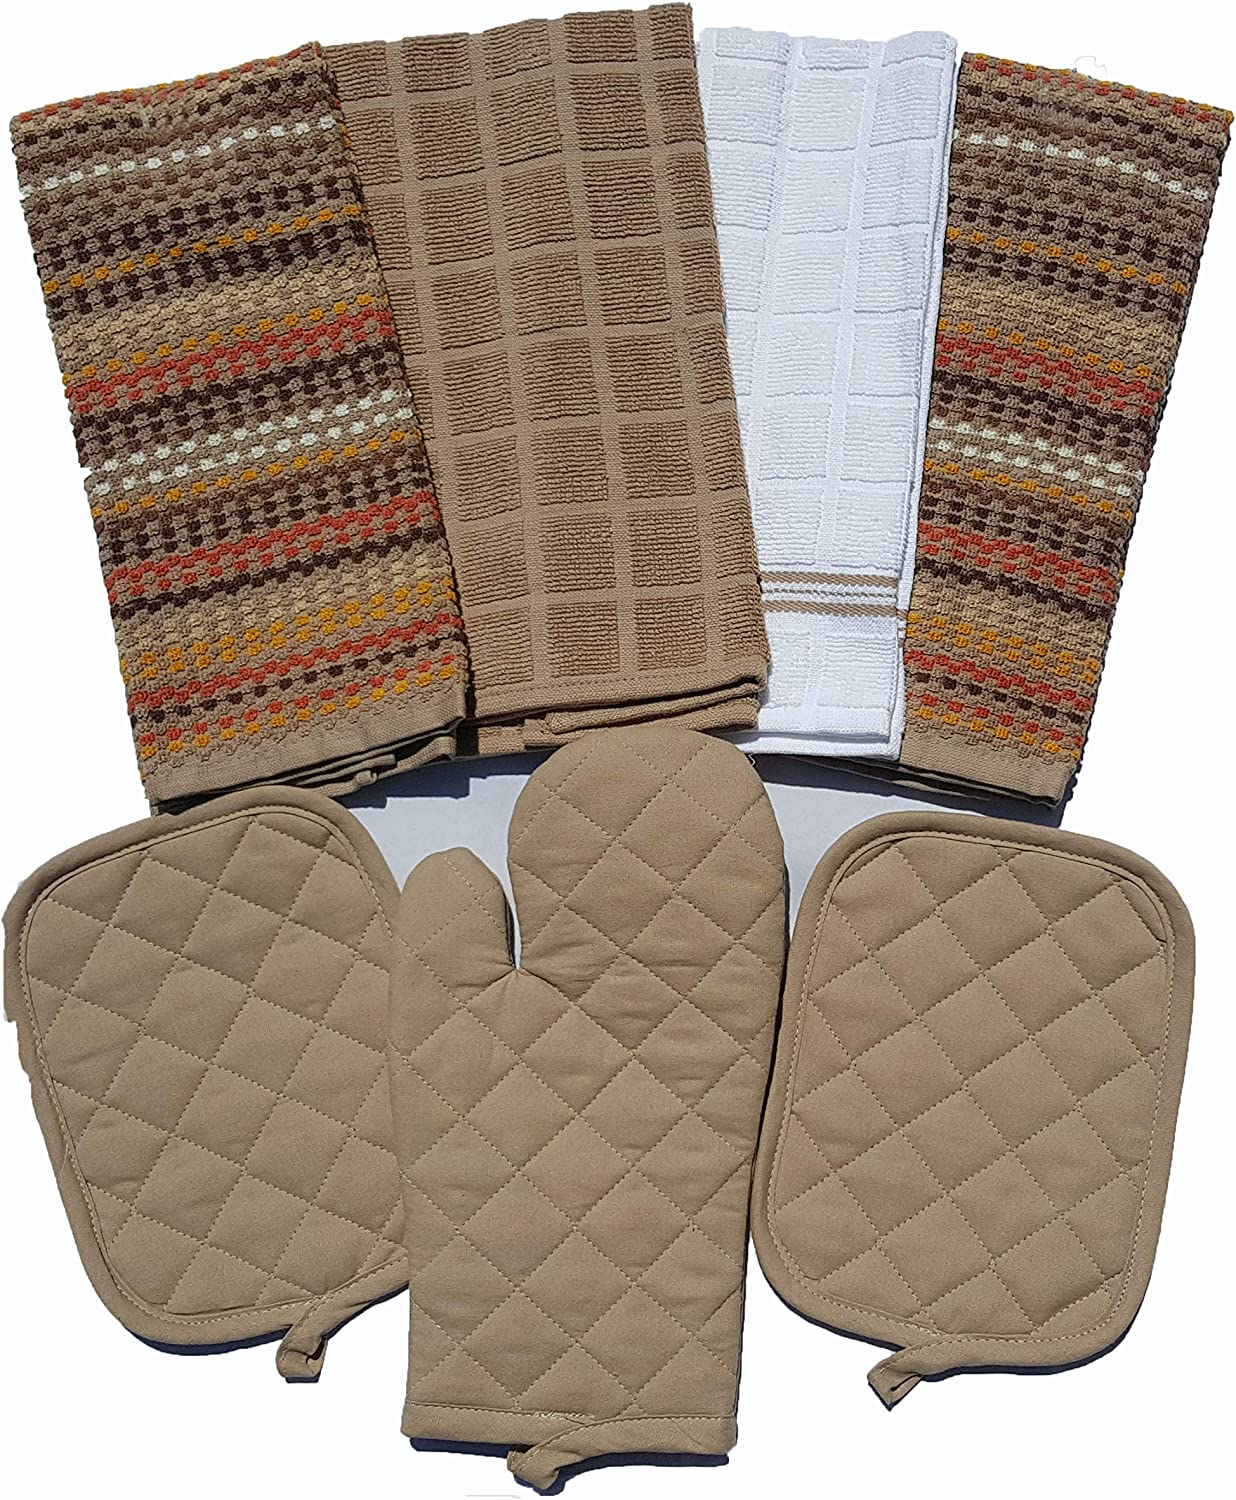 Mainstay Kitchen 7 Piece Set 2 Pot Holders, 1 Oven Mitt, 1 White 1 Brown 2 Multi-Color Towels